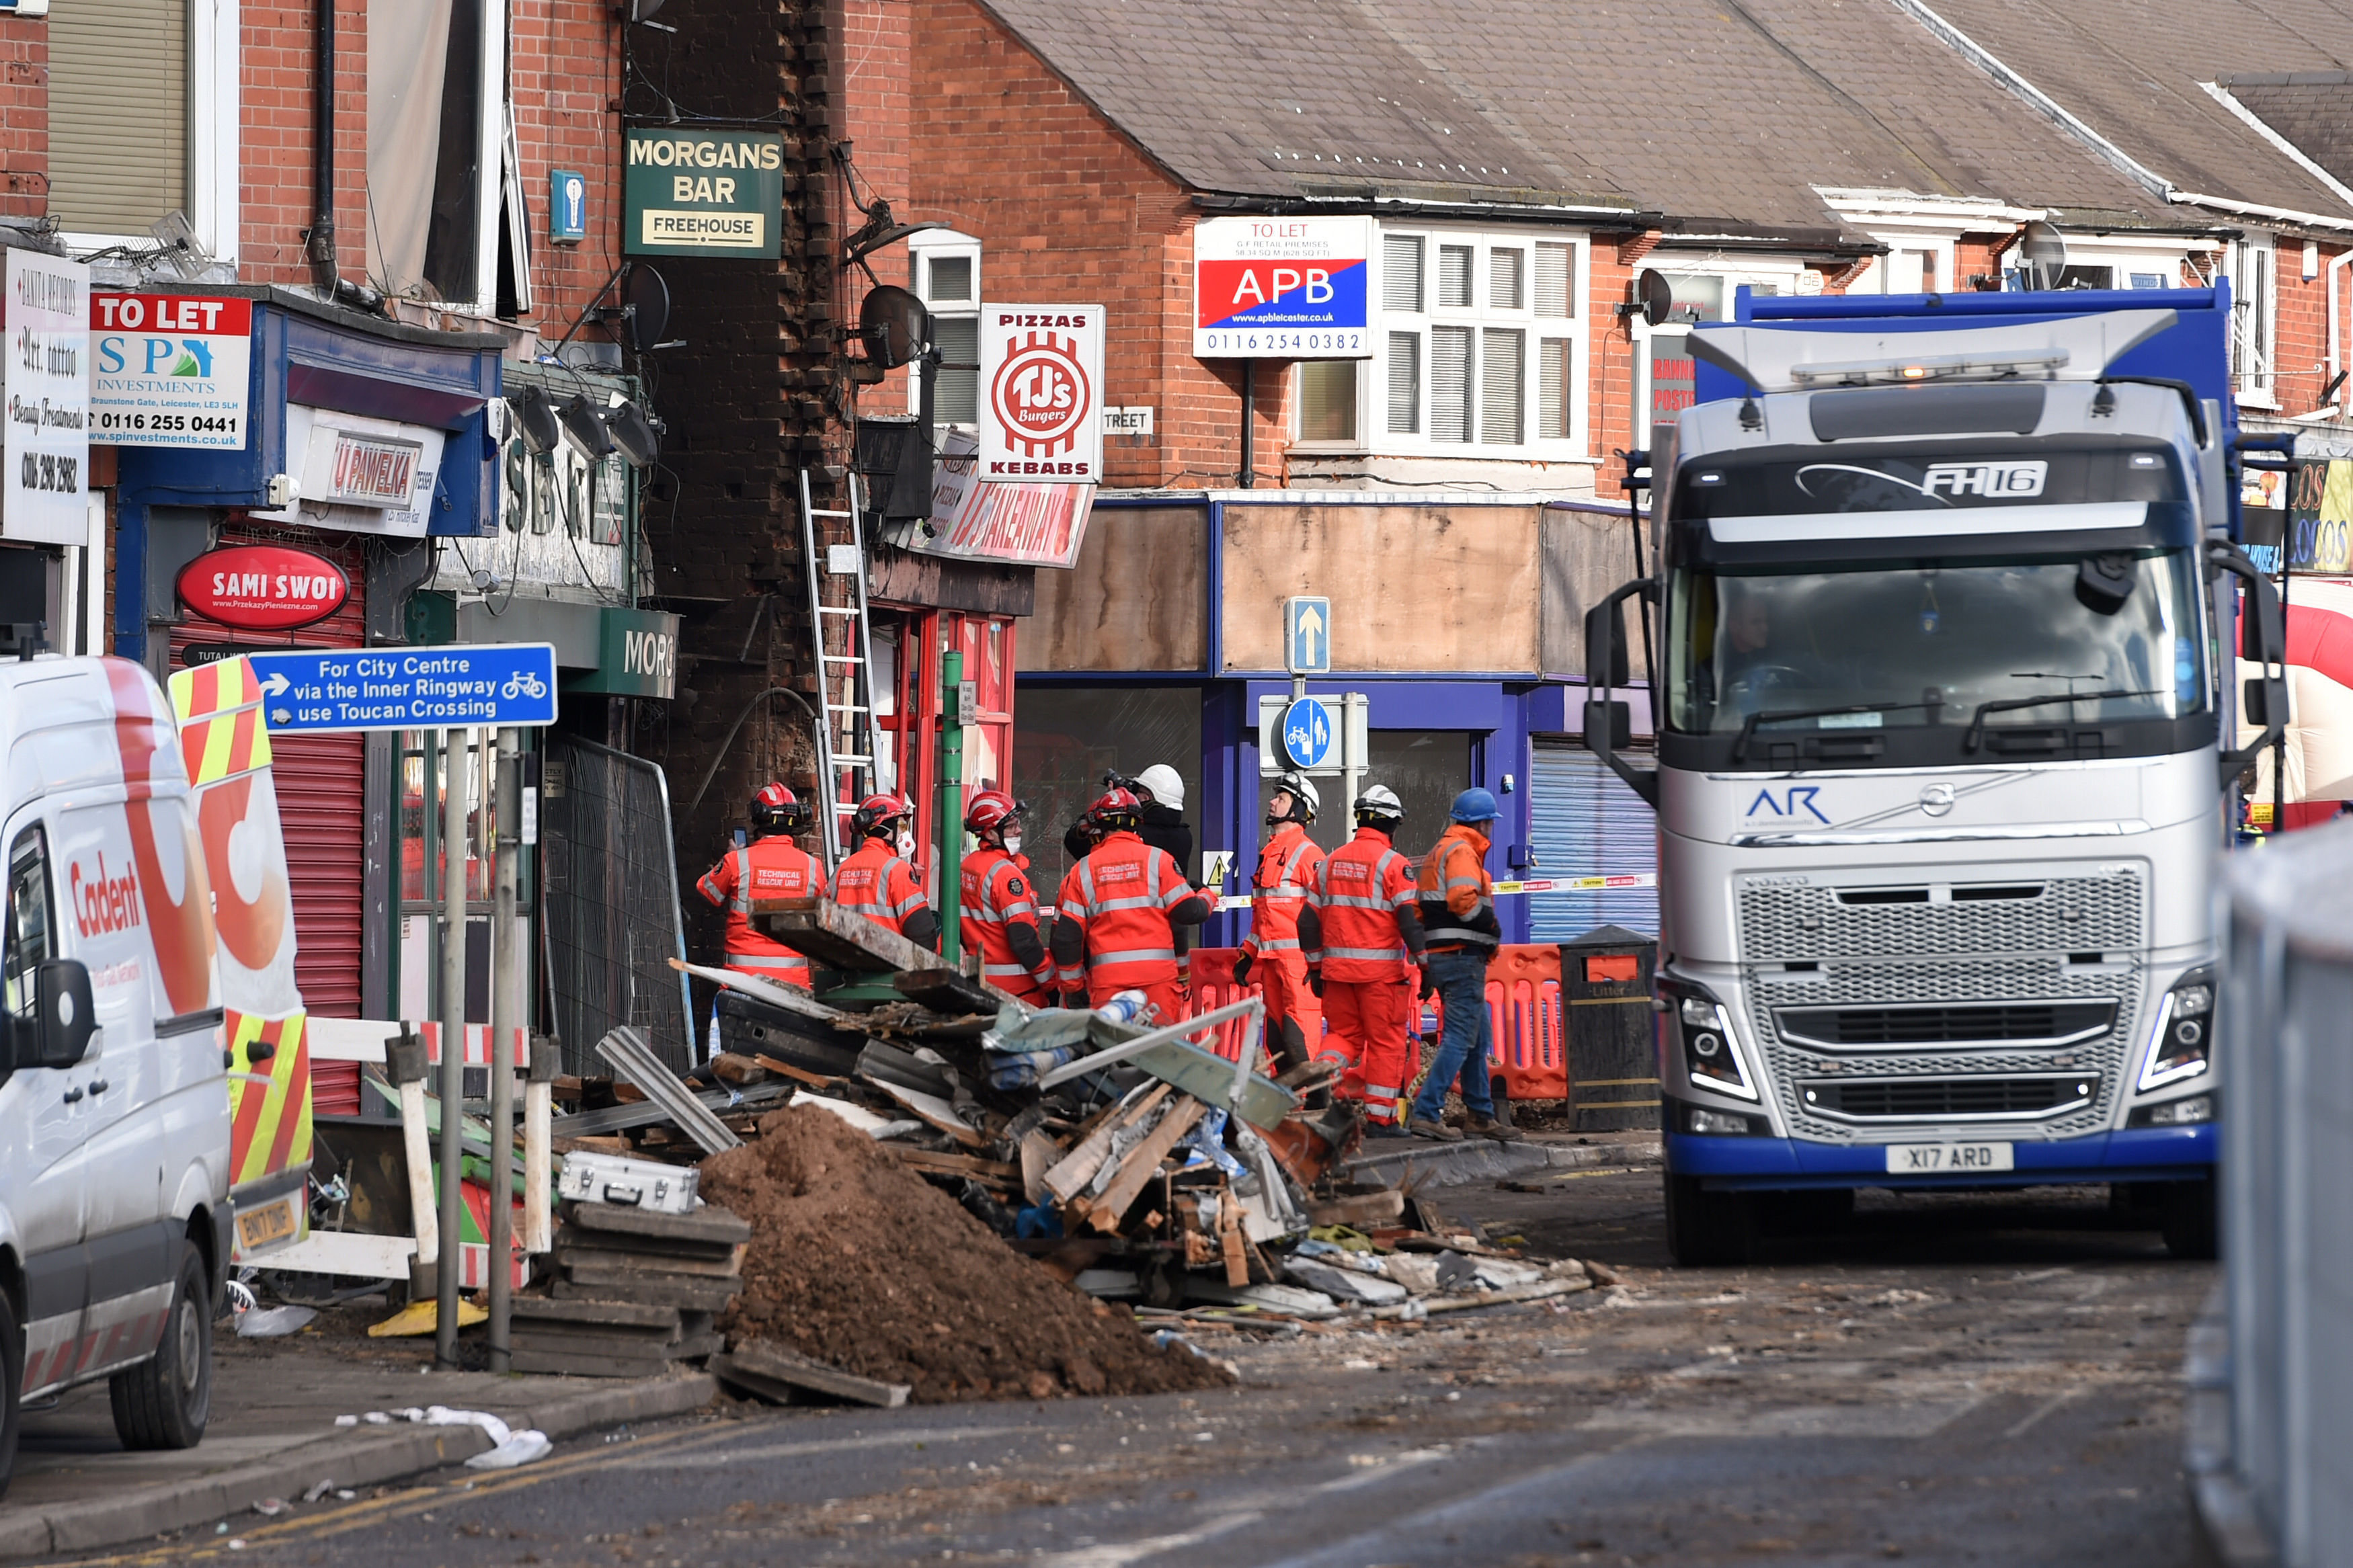 Leicester Explosion: 5 Missing Named By Police